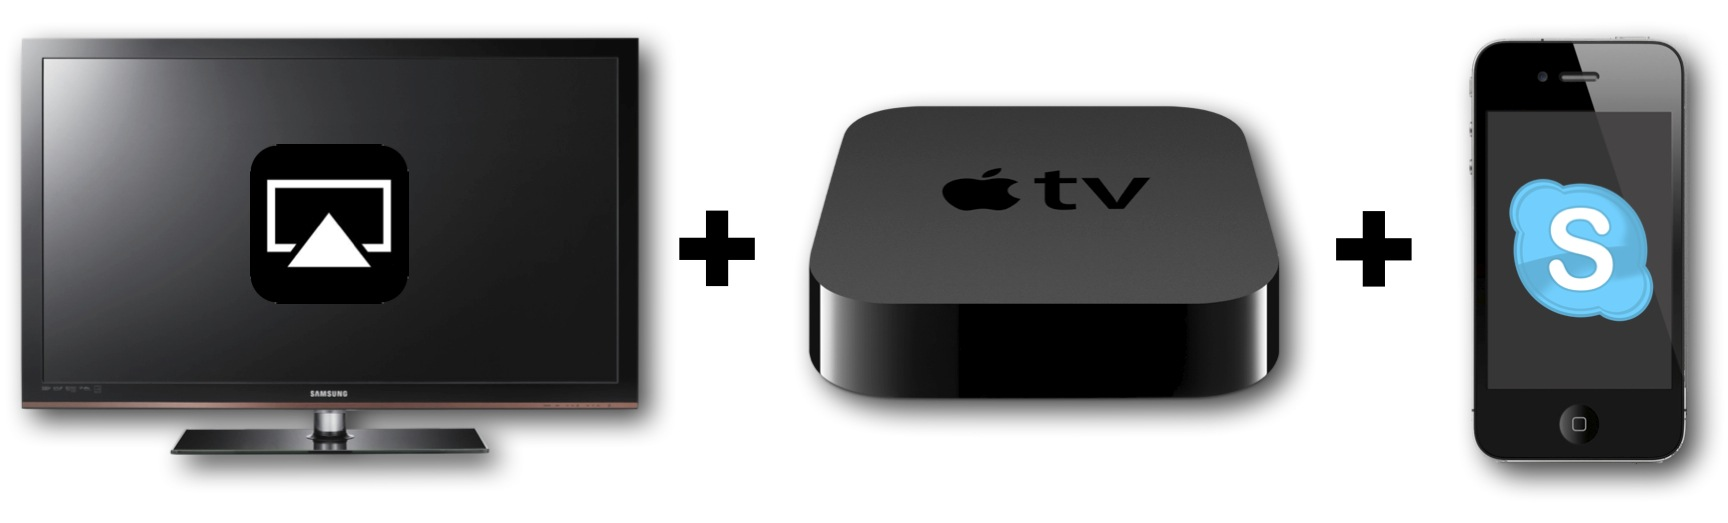 HDTV AppleTV iPhone4S